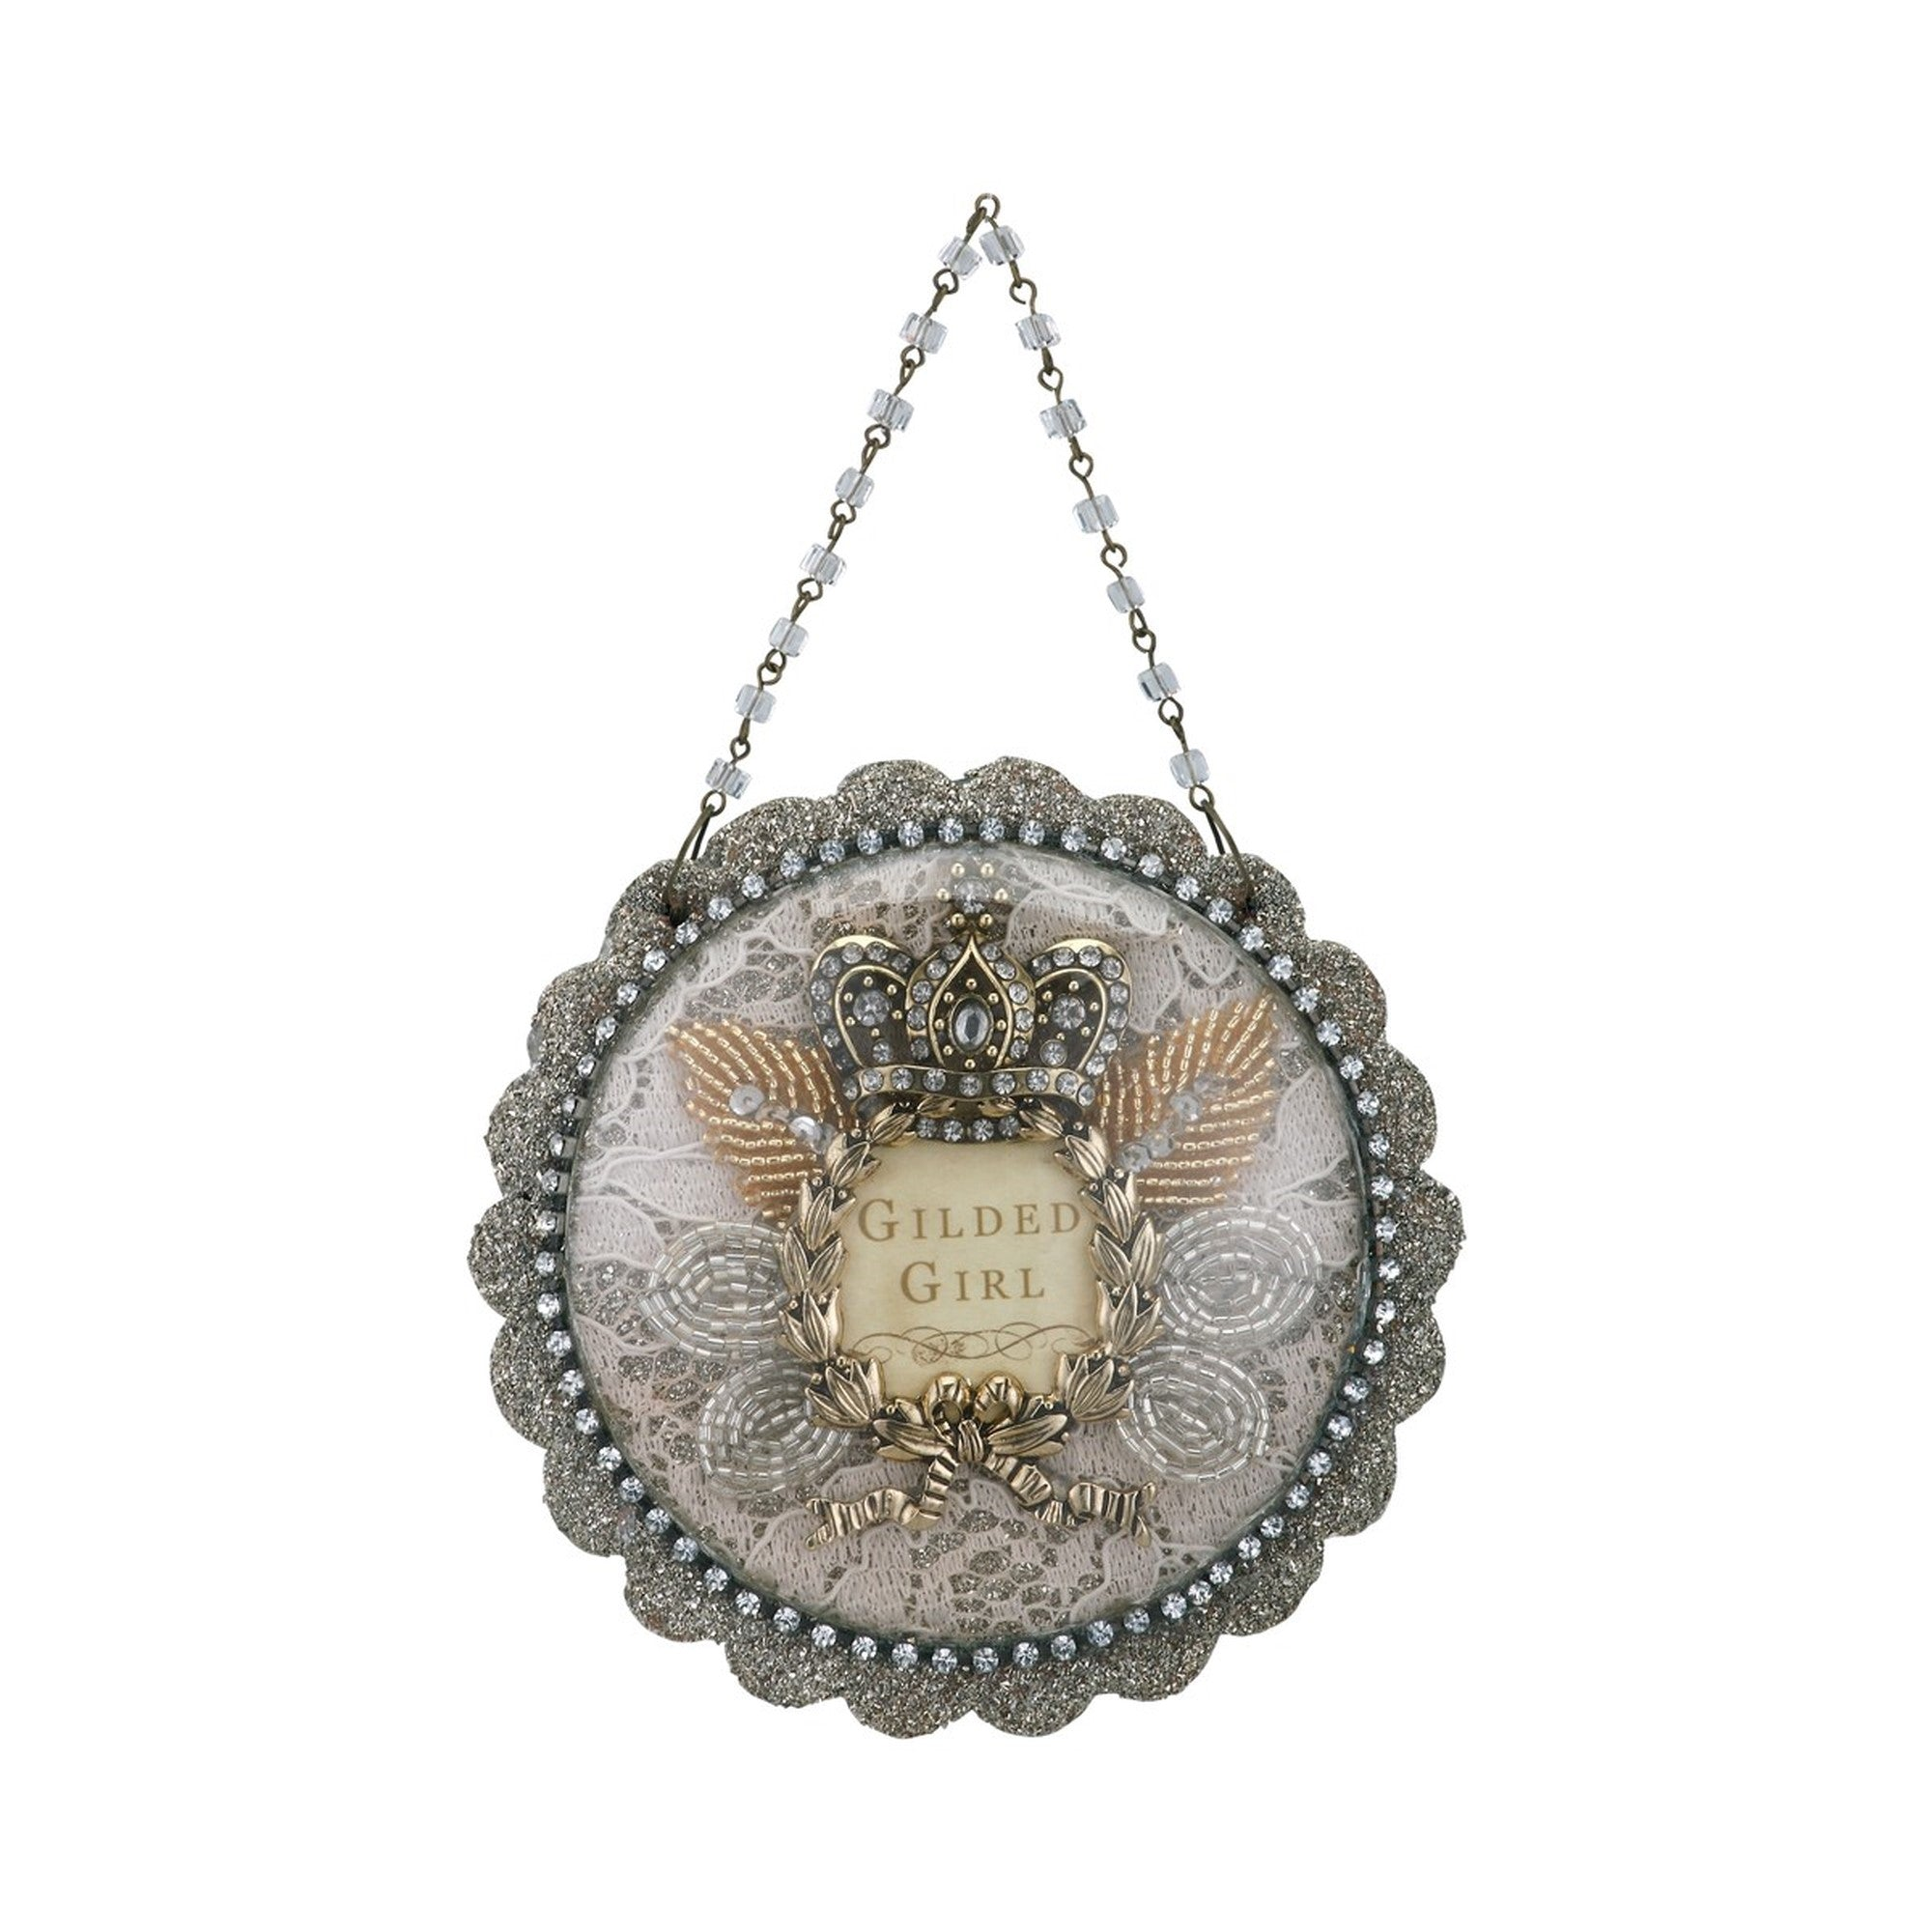 A Gilded Life Gilded Girl Dome Scene Ornament  |  Putti Christmas Canada